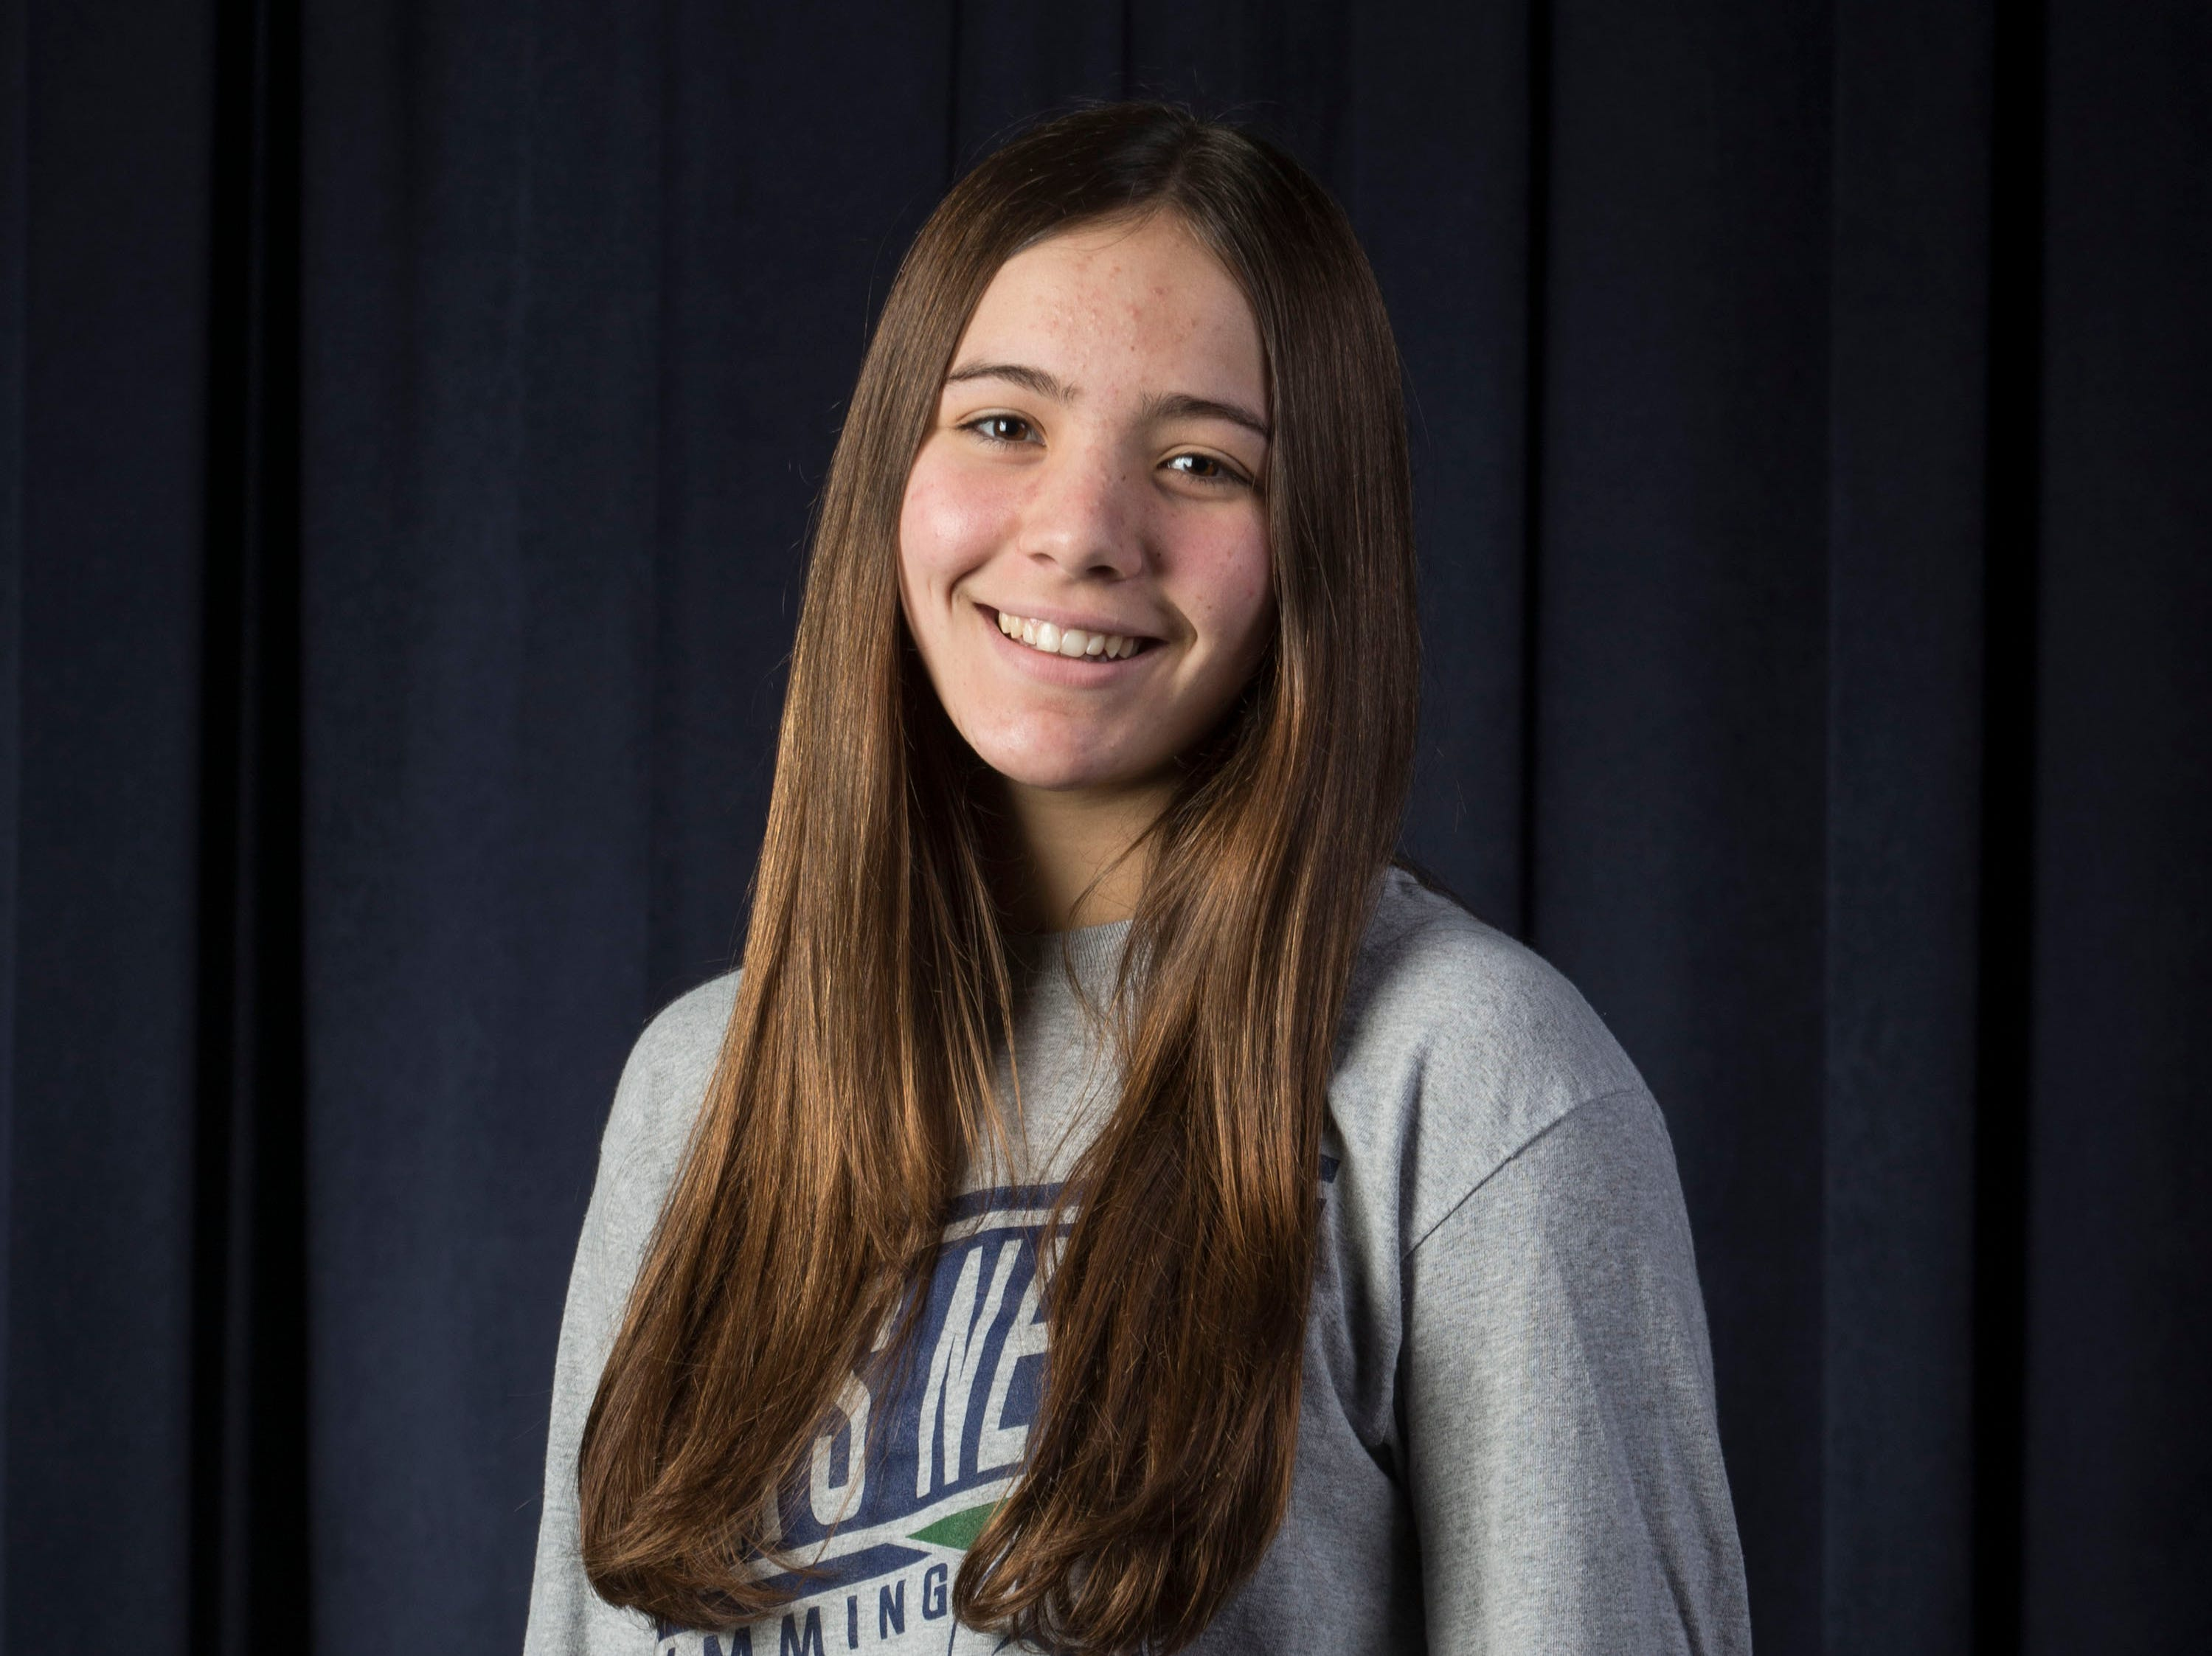 The 2019 All-Shore Girls Swim Team- Ashleigh Anzevino of Colts Neck